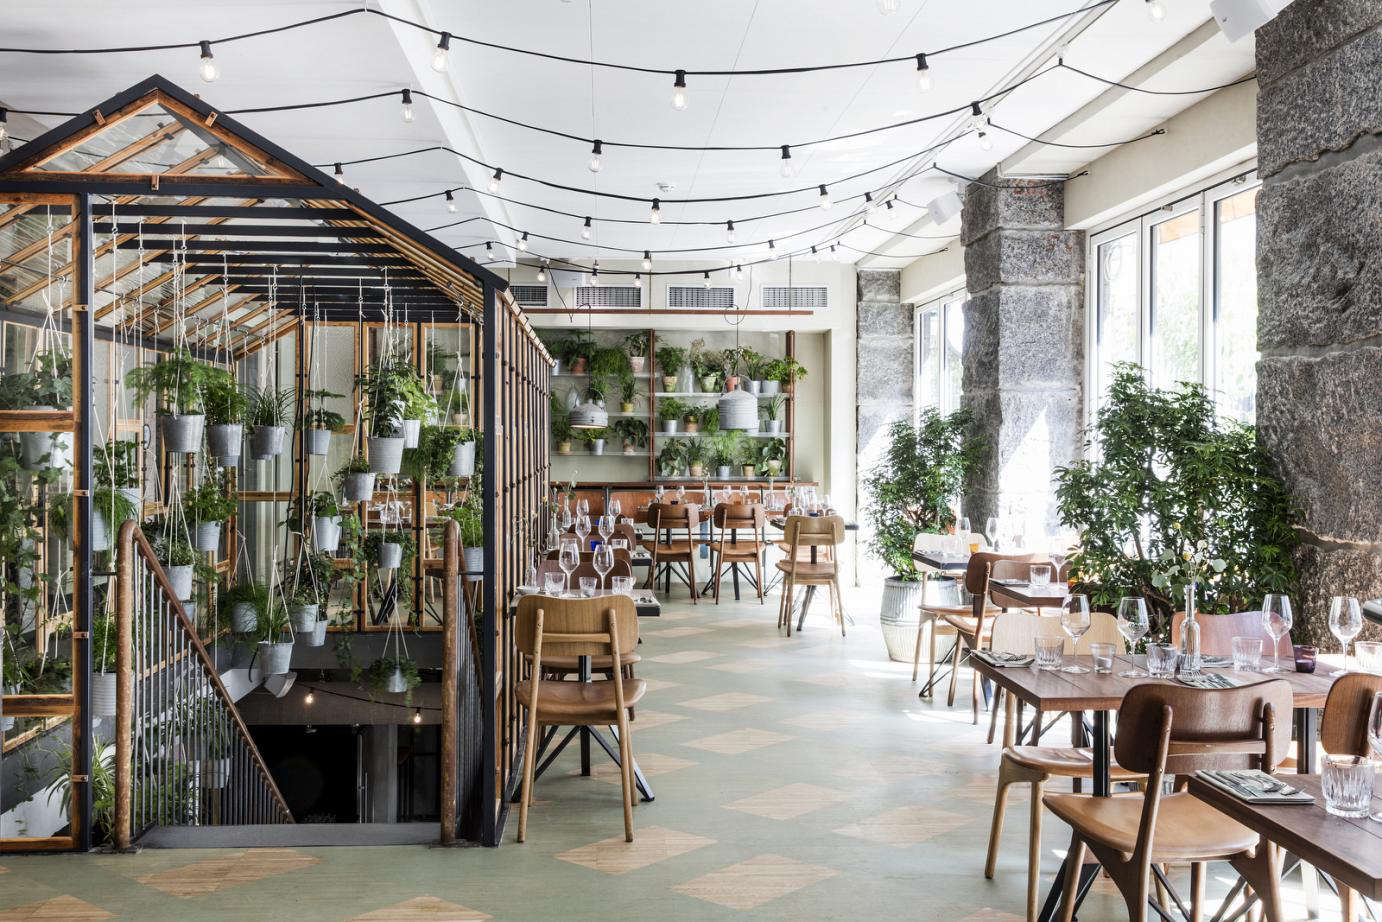 V kst a greenhouse restaurant in copenhagen gardenista for Interno 5 urban store